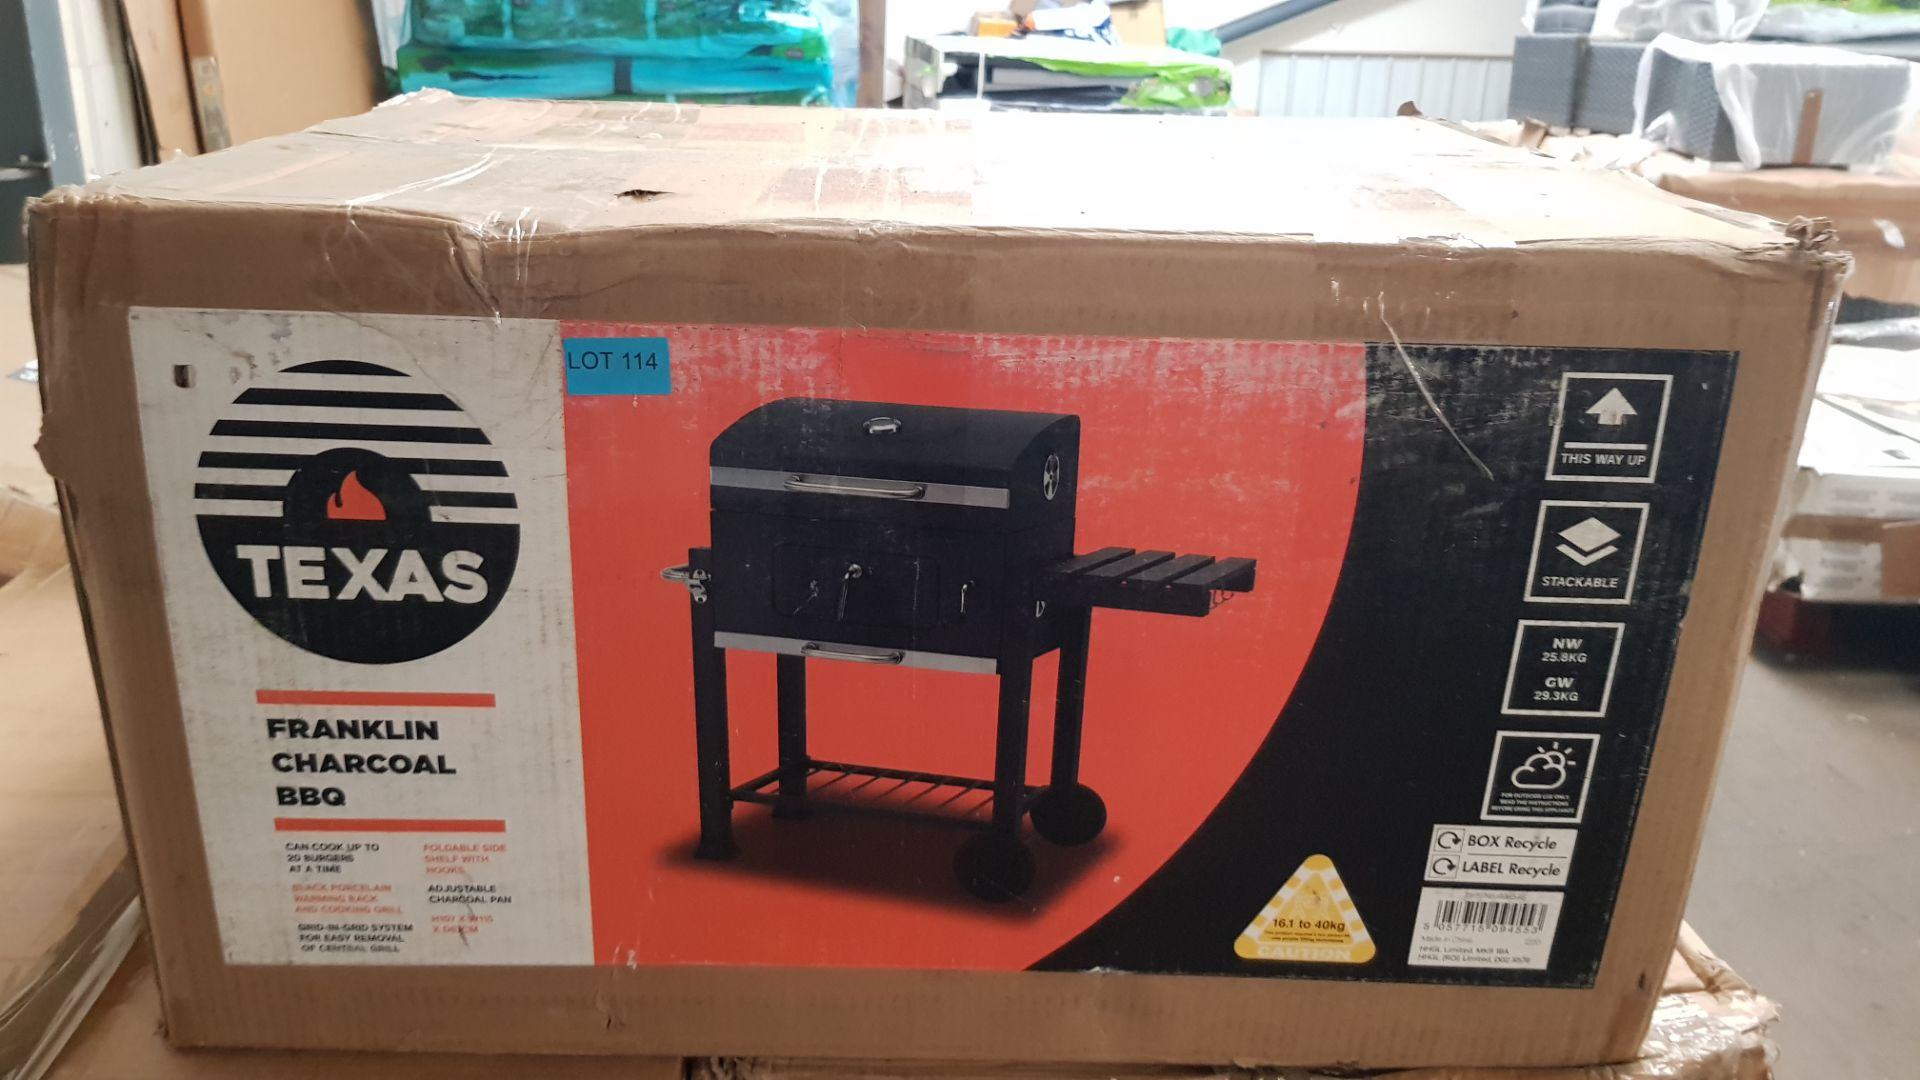 (P3) 1x Texas Franklin Charcoal BBQ. RRP £180.00. Unit Appears Clean, Unused – But Fixings Pack Has - Image 3 of 6